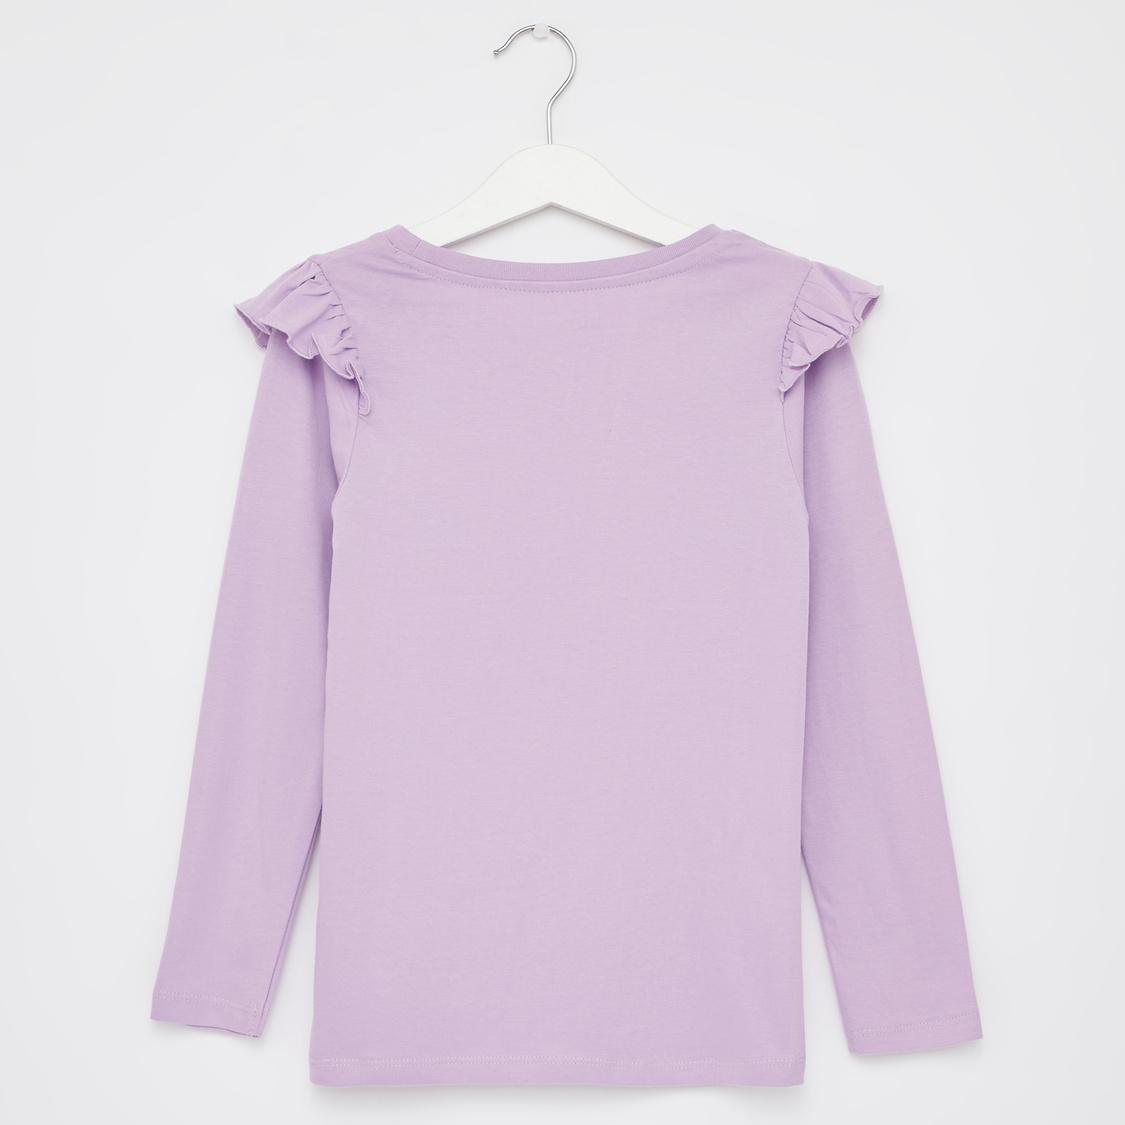 Printed Round Neck T-shirt with Long Sleeves and Ruffle Detail